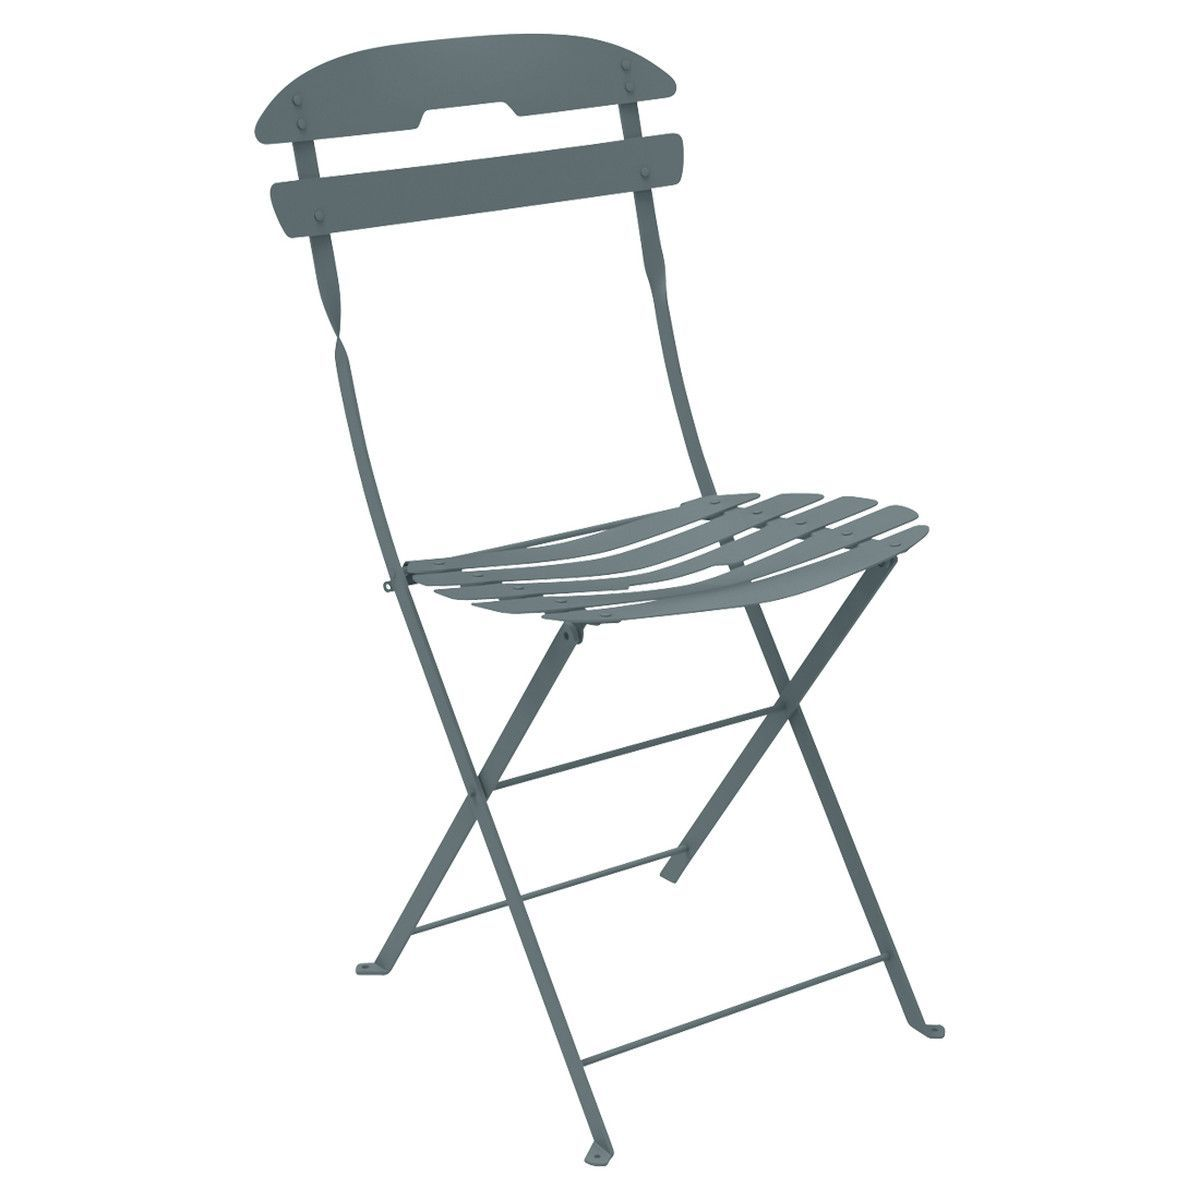 Fermob Chaise La Mome Gris Orage In 2020 Folding Chair Metal Chairs Outdoor Folding Chairs